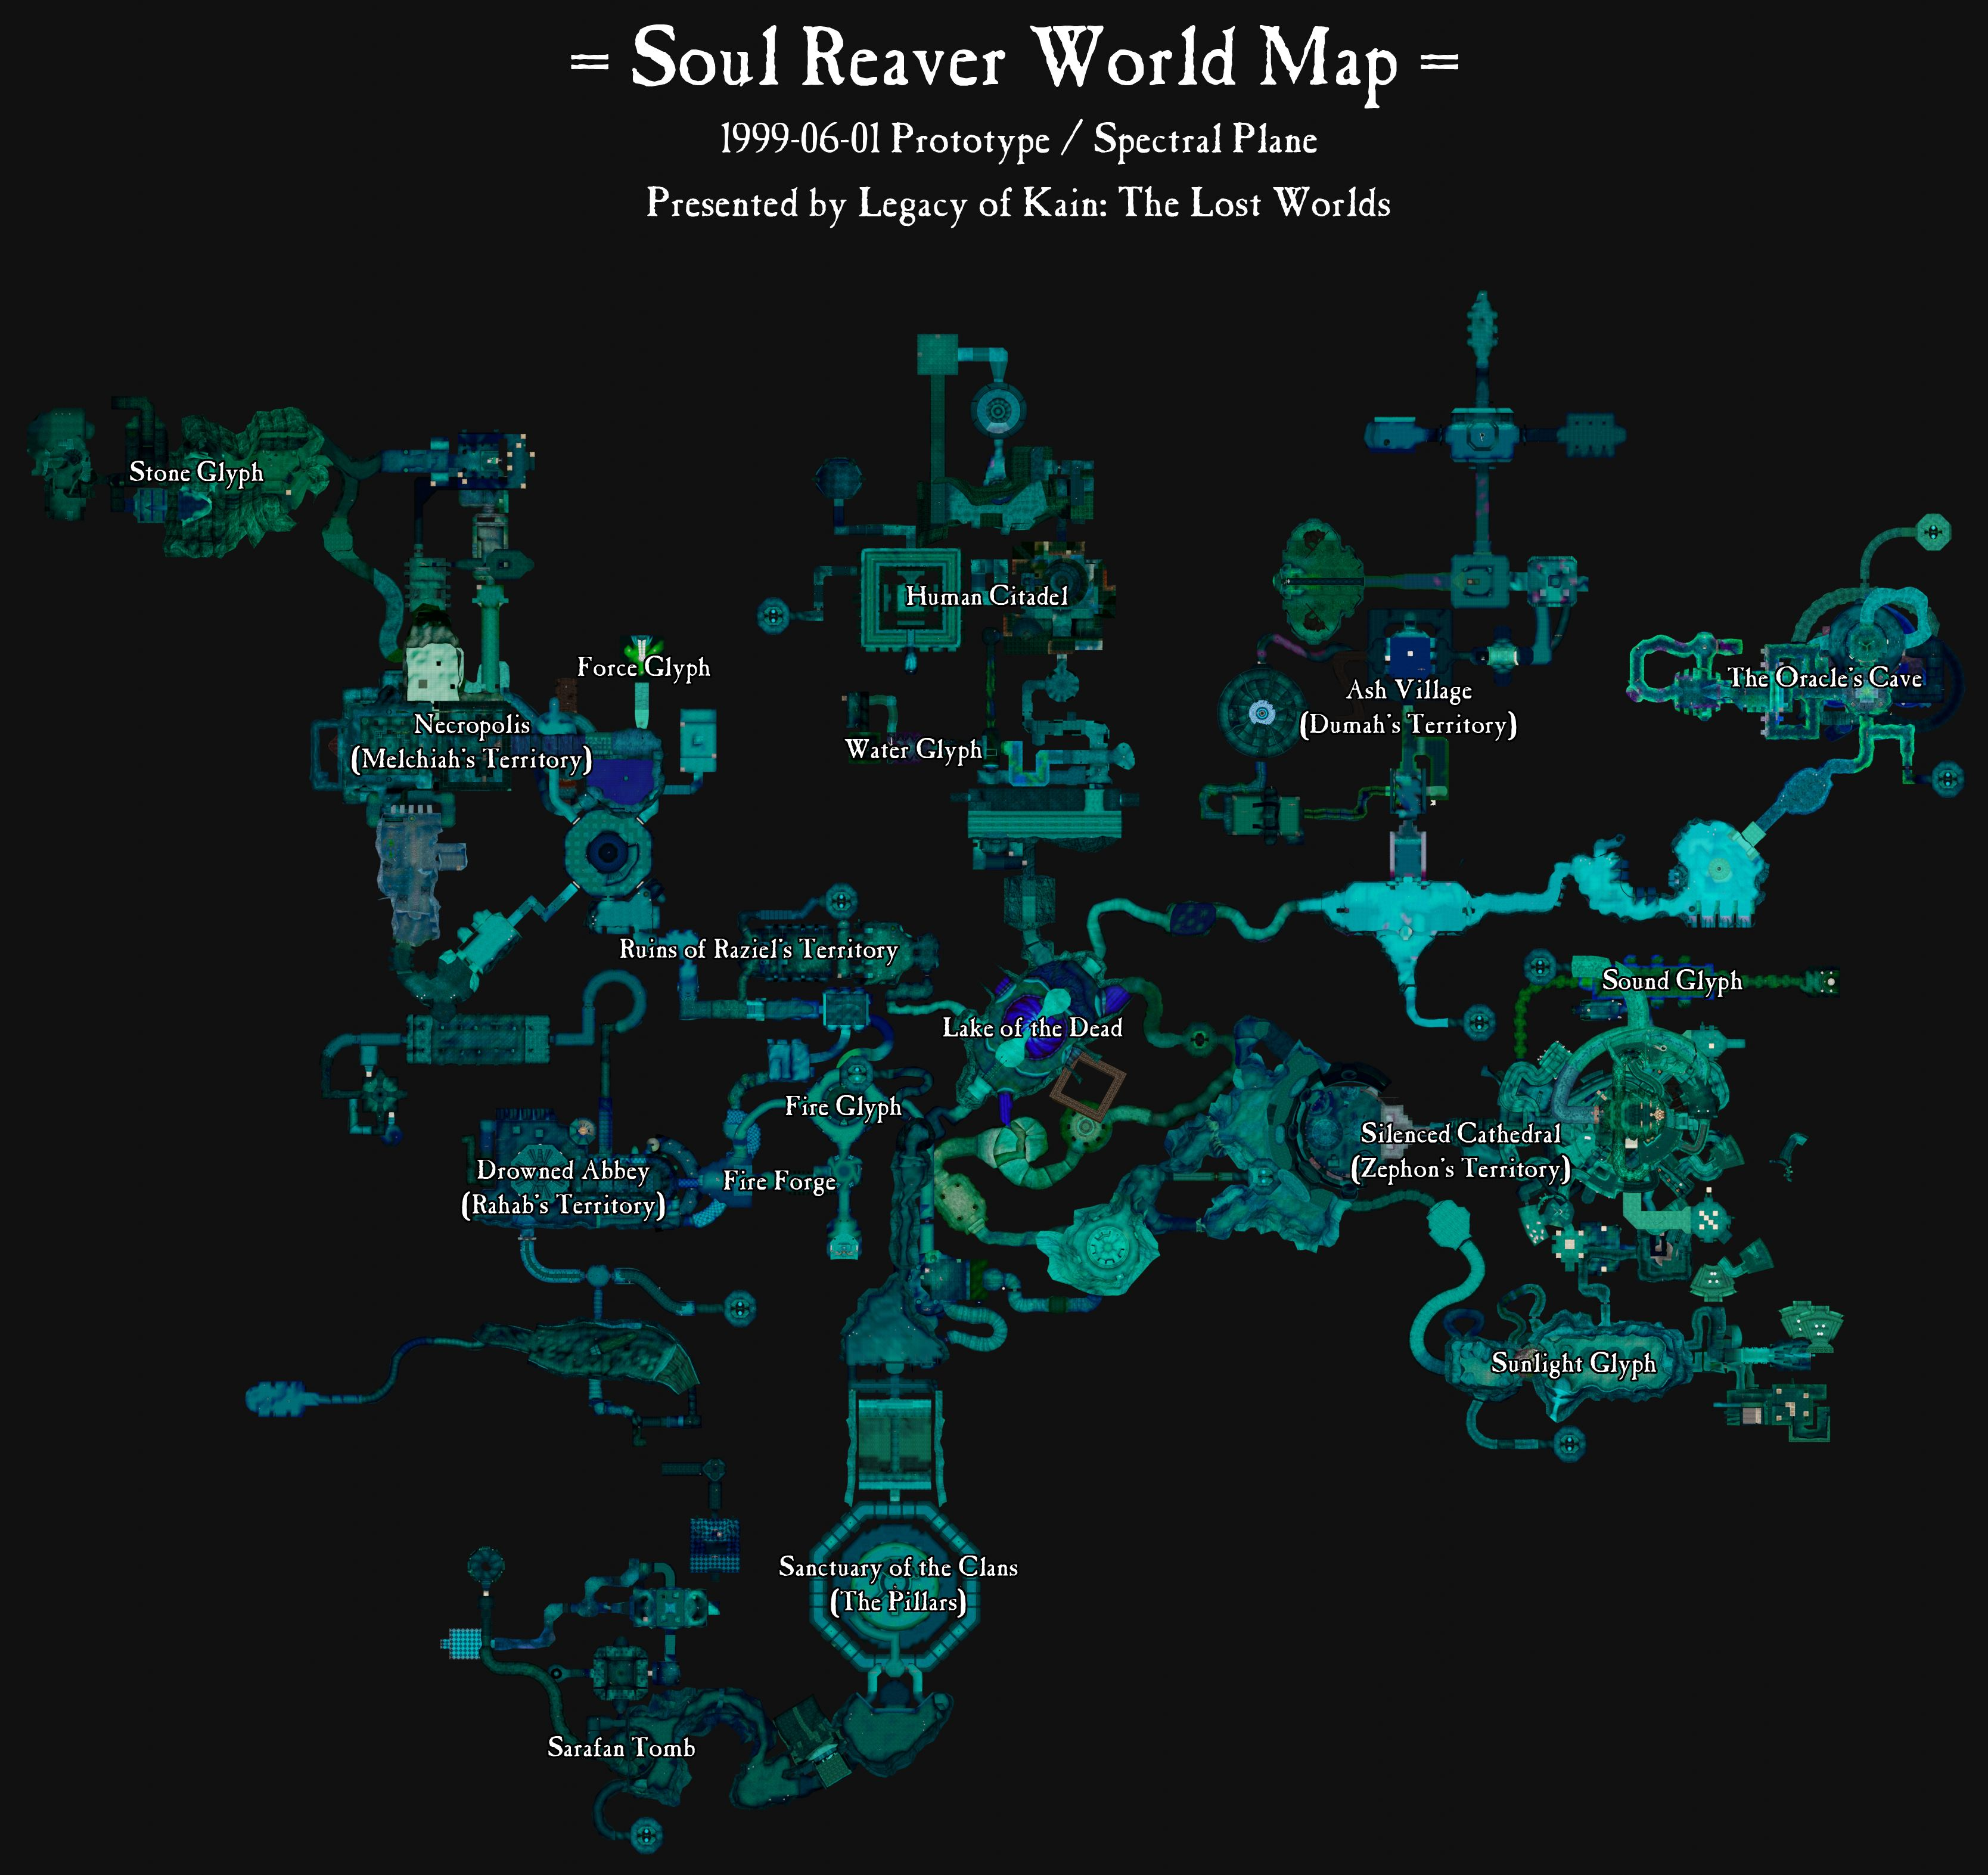 World Map Evolution-01-Maps-Soul Reaver World Map-1999-06-01-Spectral-Annotated.jpg